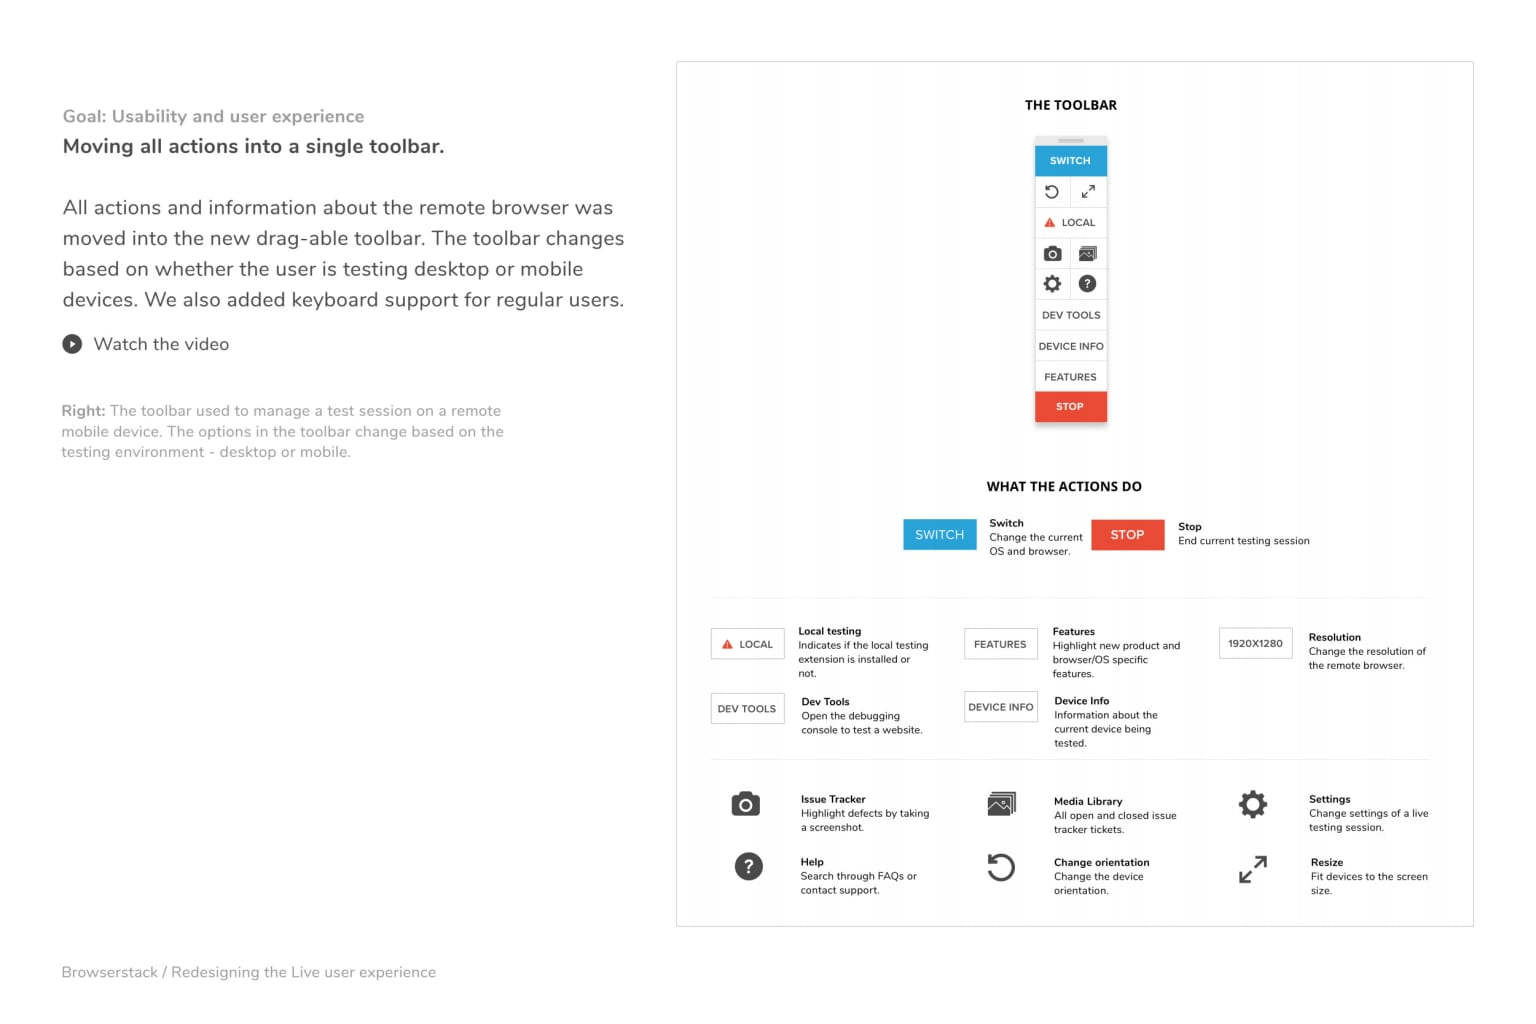 Redesigning BrowserStack's Live user experience.